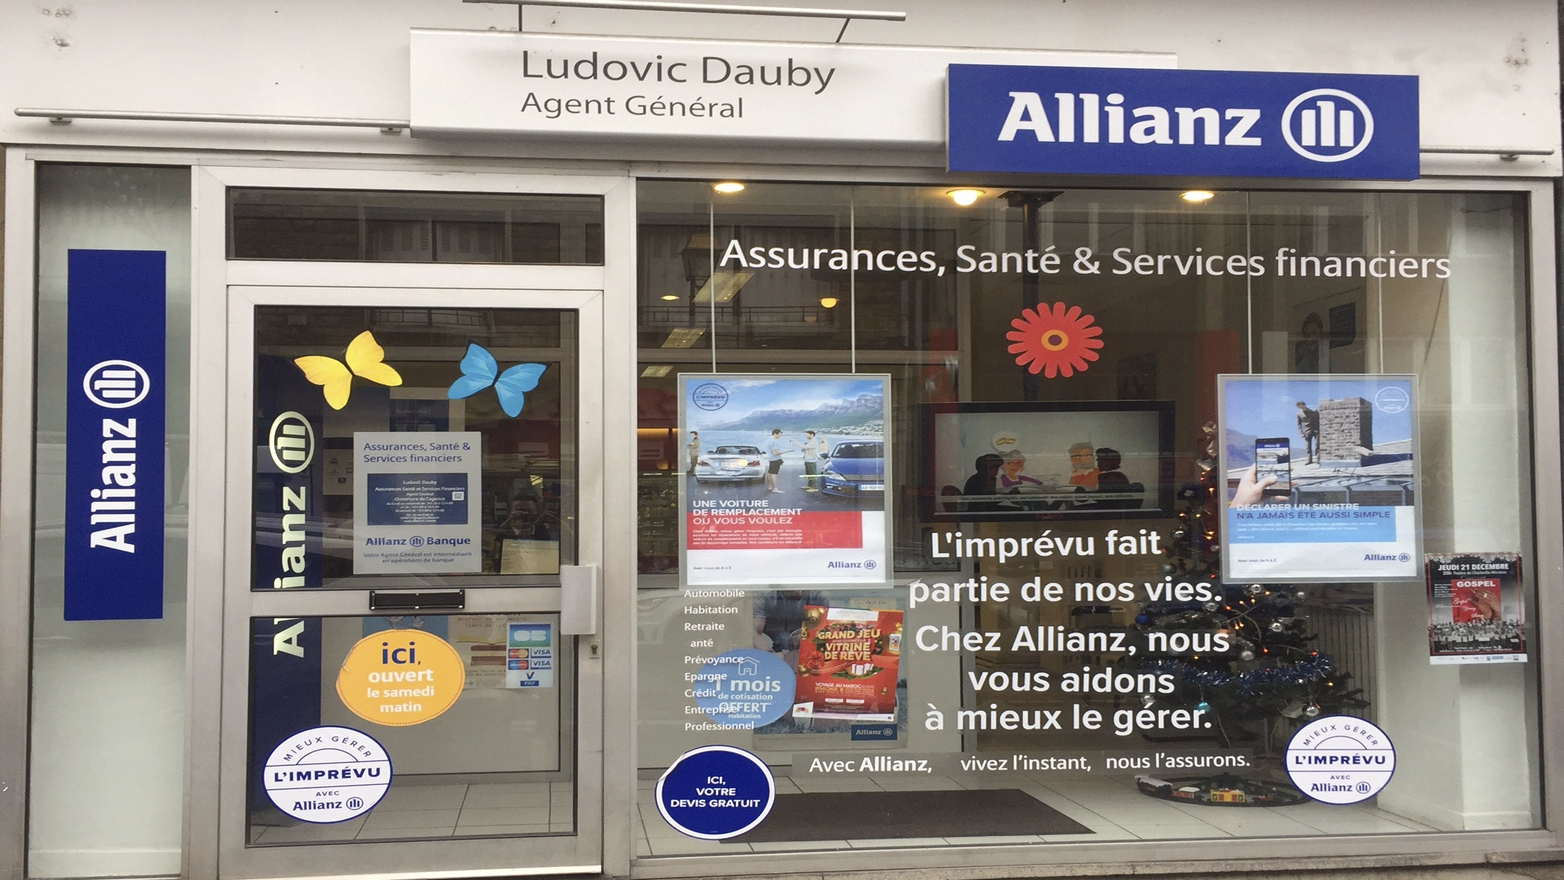 Allianz Charleville mantoue 4f - Ludovic DAUBY